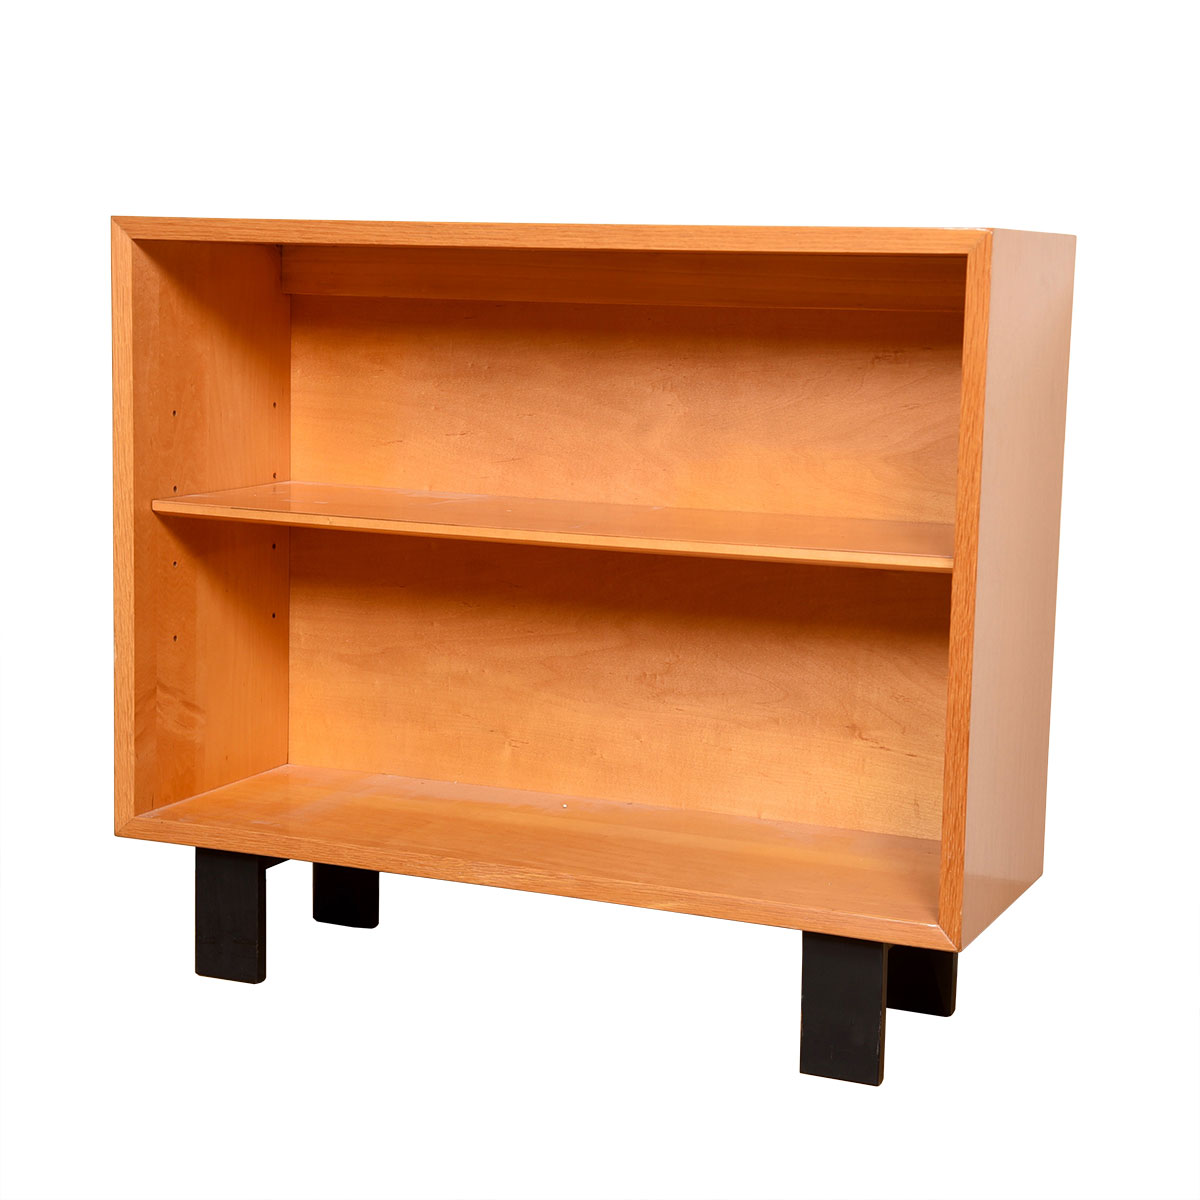 Slim Open Display   Compact Bookcase by George Nelson for Herman Miller 1950's